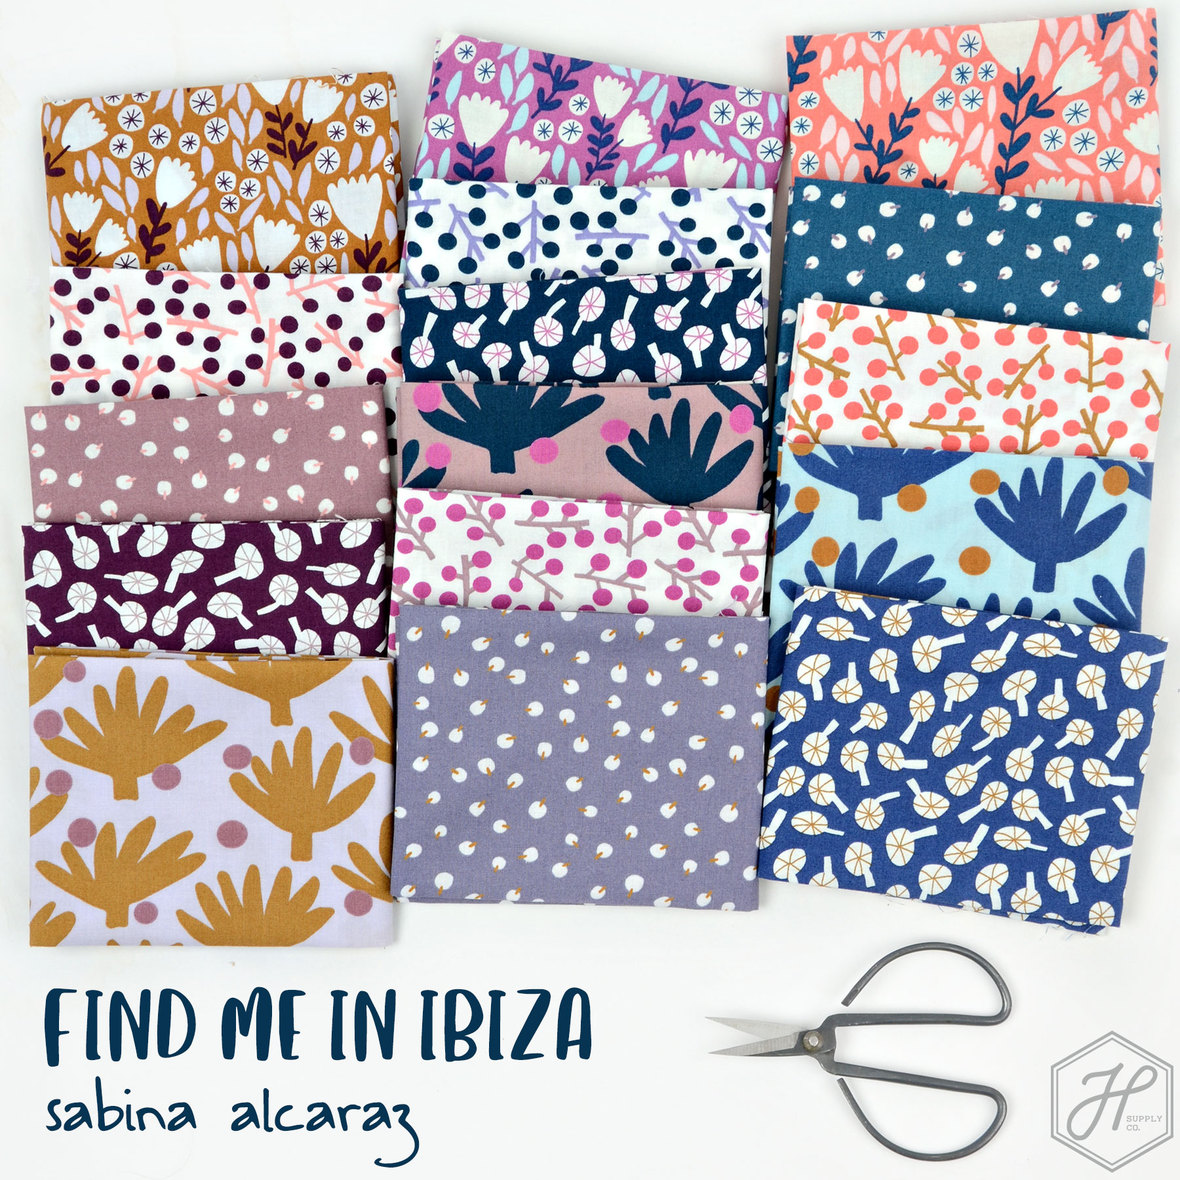 Find-Me-in-Ibiza-Fabric-Cotton-and-Steel-at-Hawthorne-Supply-Co